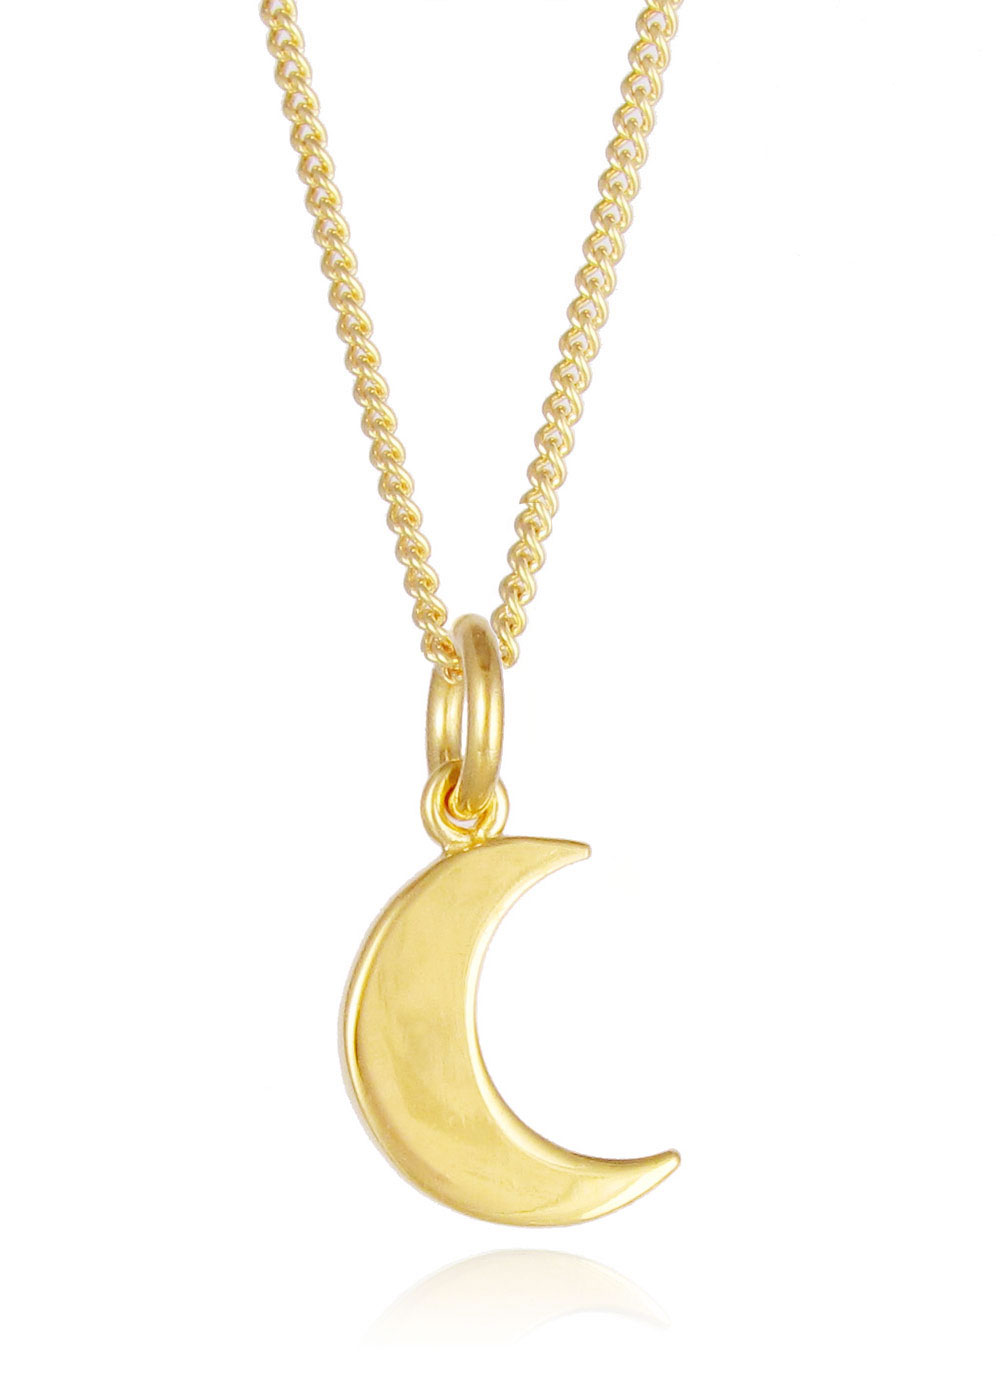 gargantilla buy crescent design pendants pendant moon en online jewelry chapada oro necklaces and